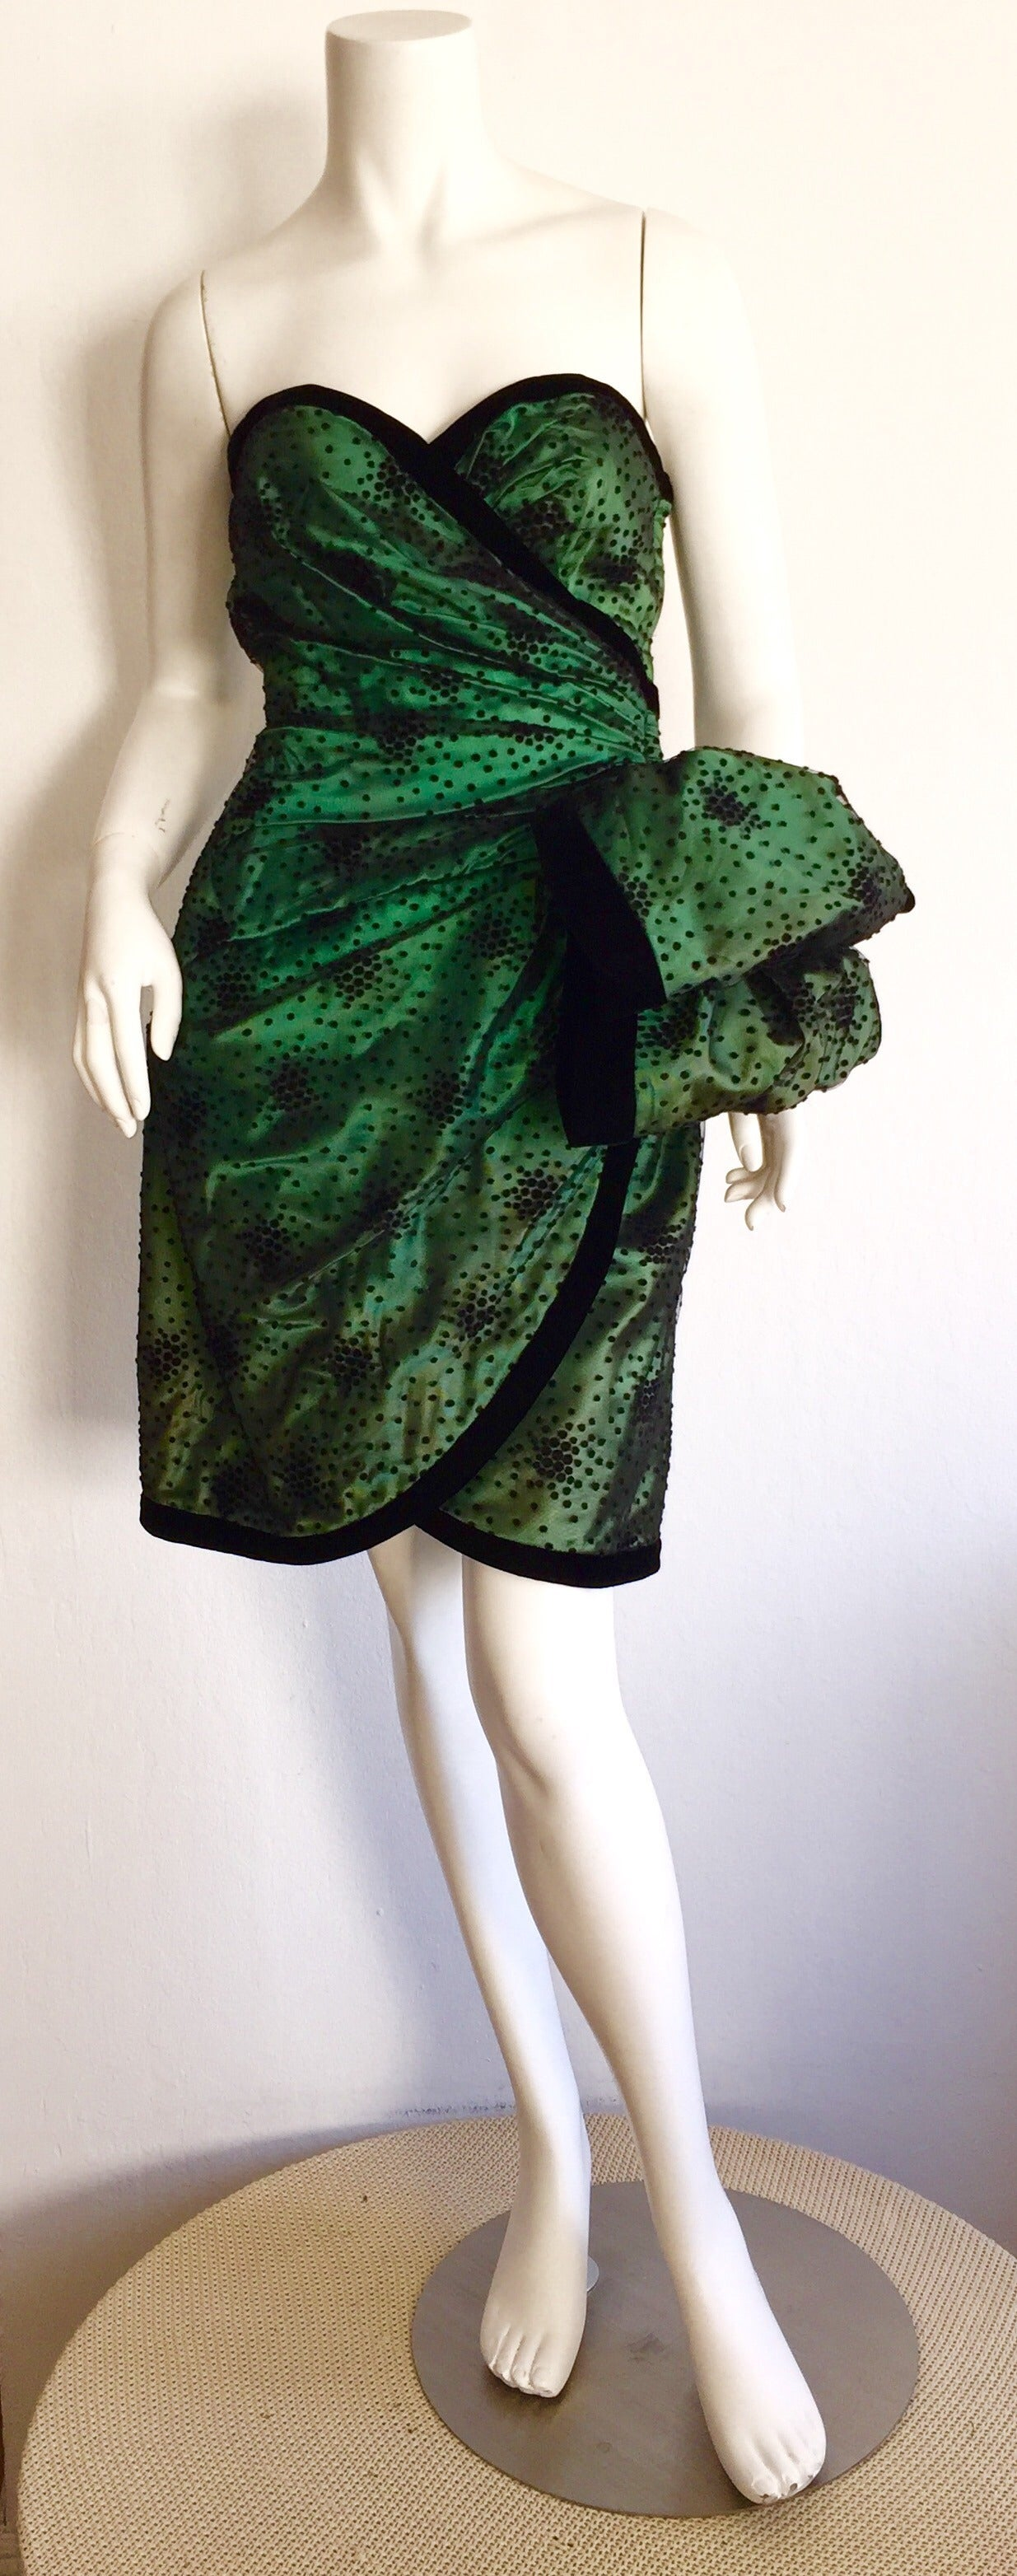 Incredible Vintage Victor Costa Bergdorf Goodman Green + Black Bow Dress 6